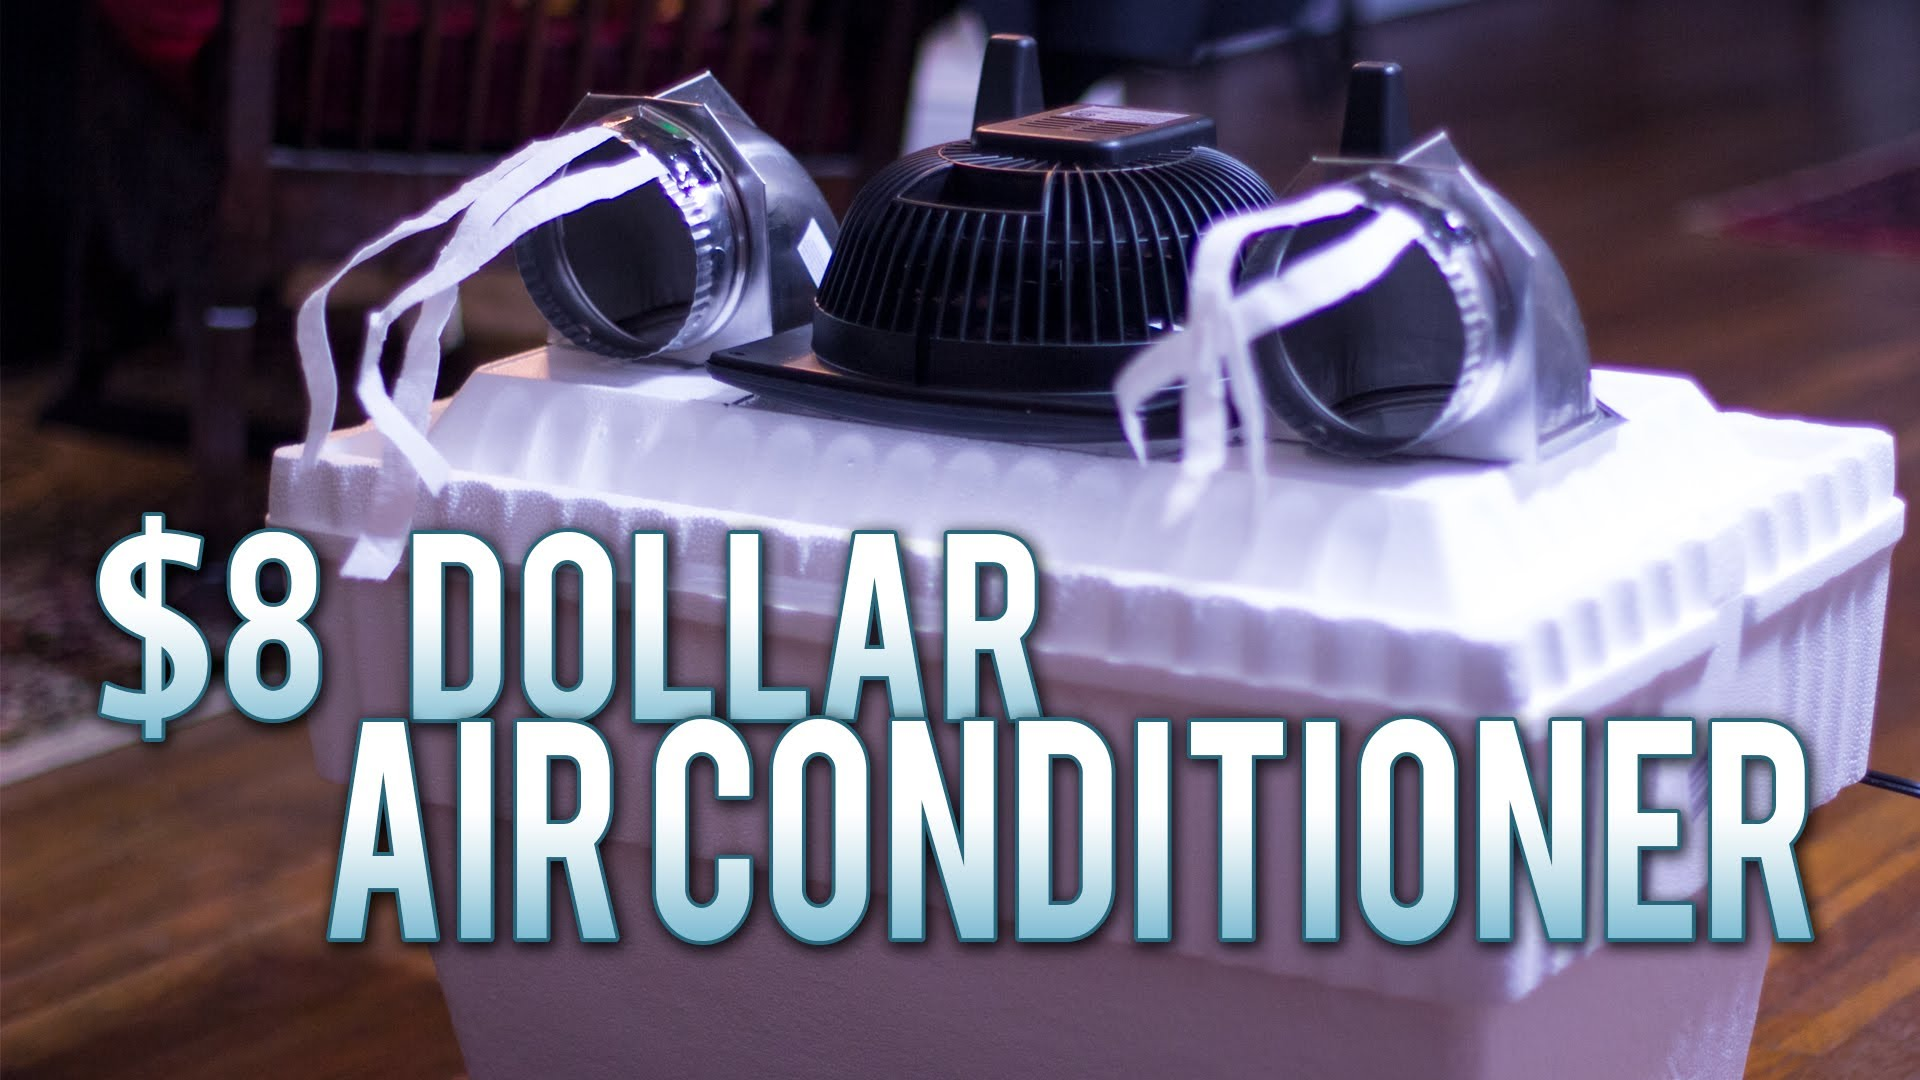 How To Make An $8 Homemade Air Conditioner – Works Flawlessly!